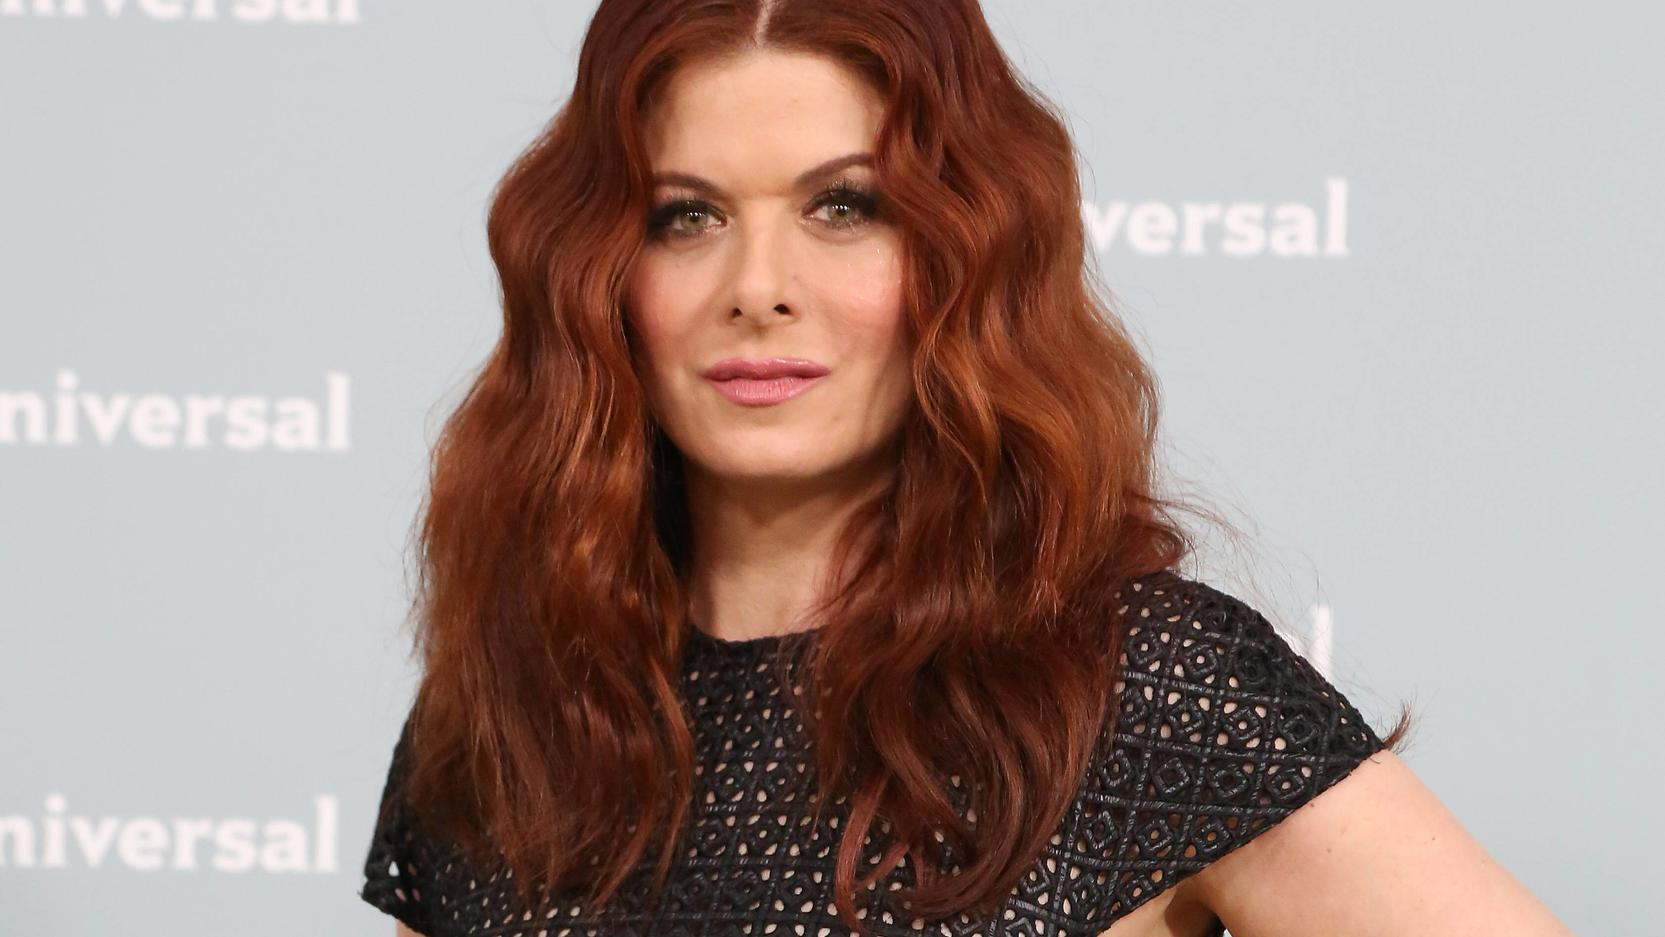 May 13, 2018 - New York, N.Y, USA - DEBRA MESSING attends the NBC Universal 2018 Upfront,.Radio City Music Hall, NYC.May 14, 2018 .Photos by , Globe Photos Inc. New York USA PUBLICATIONxINxGERxSUIxAUTxONLY - ZUMAms4_ 20180513_zaa_ms4_053 Copyright: x